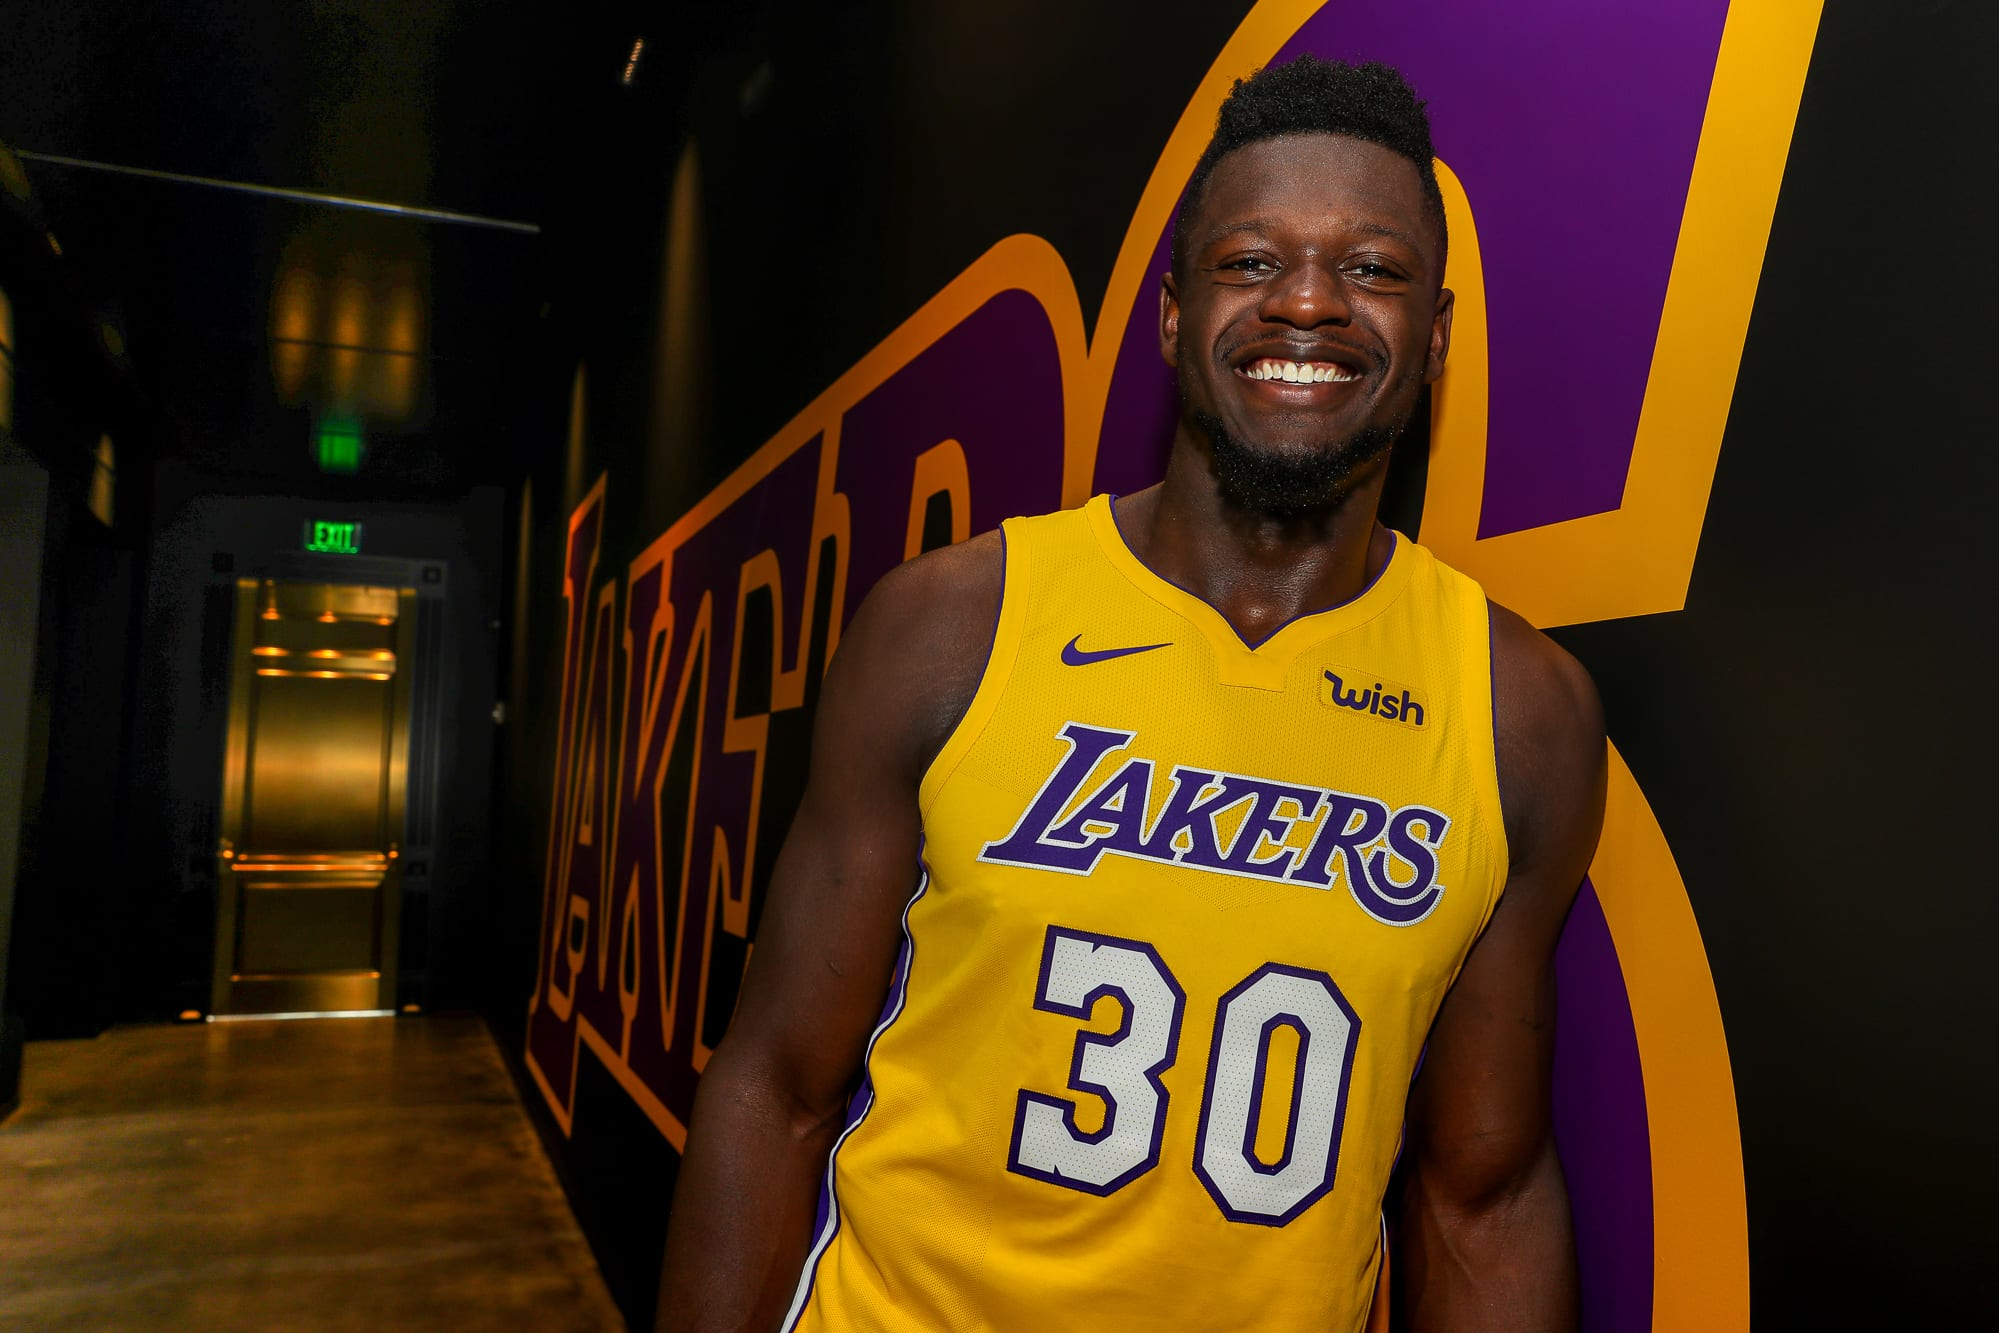 Lakers  Wish  Patch Has The Franchise Looking Good In More Ways Than ... f4a5775dc